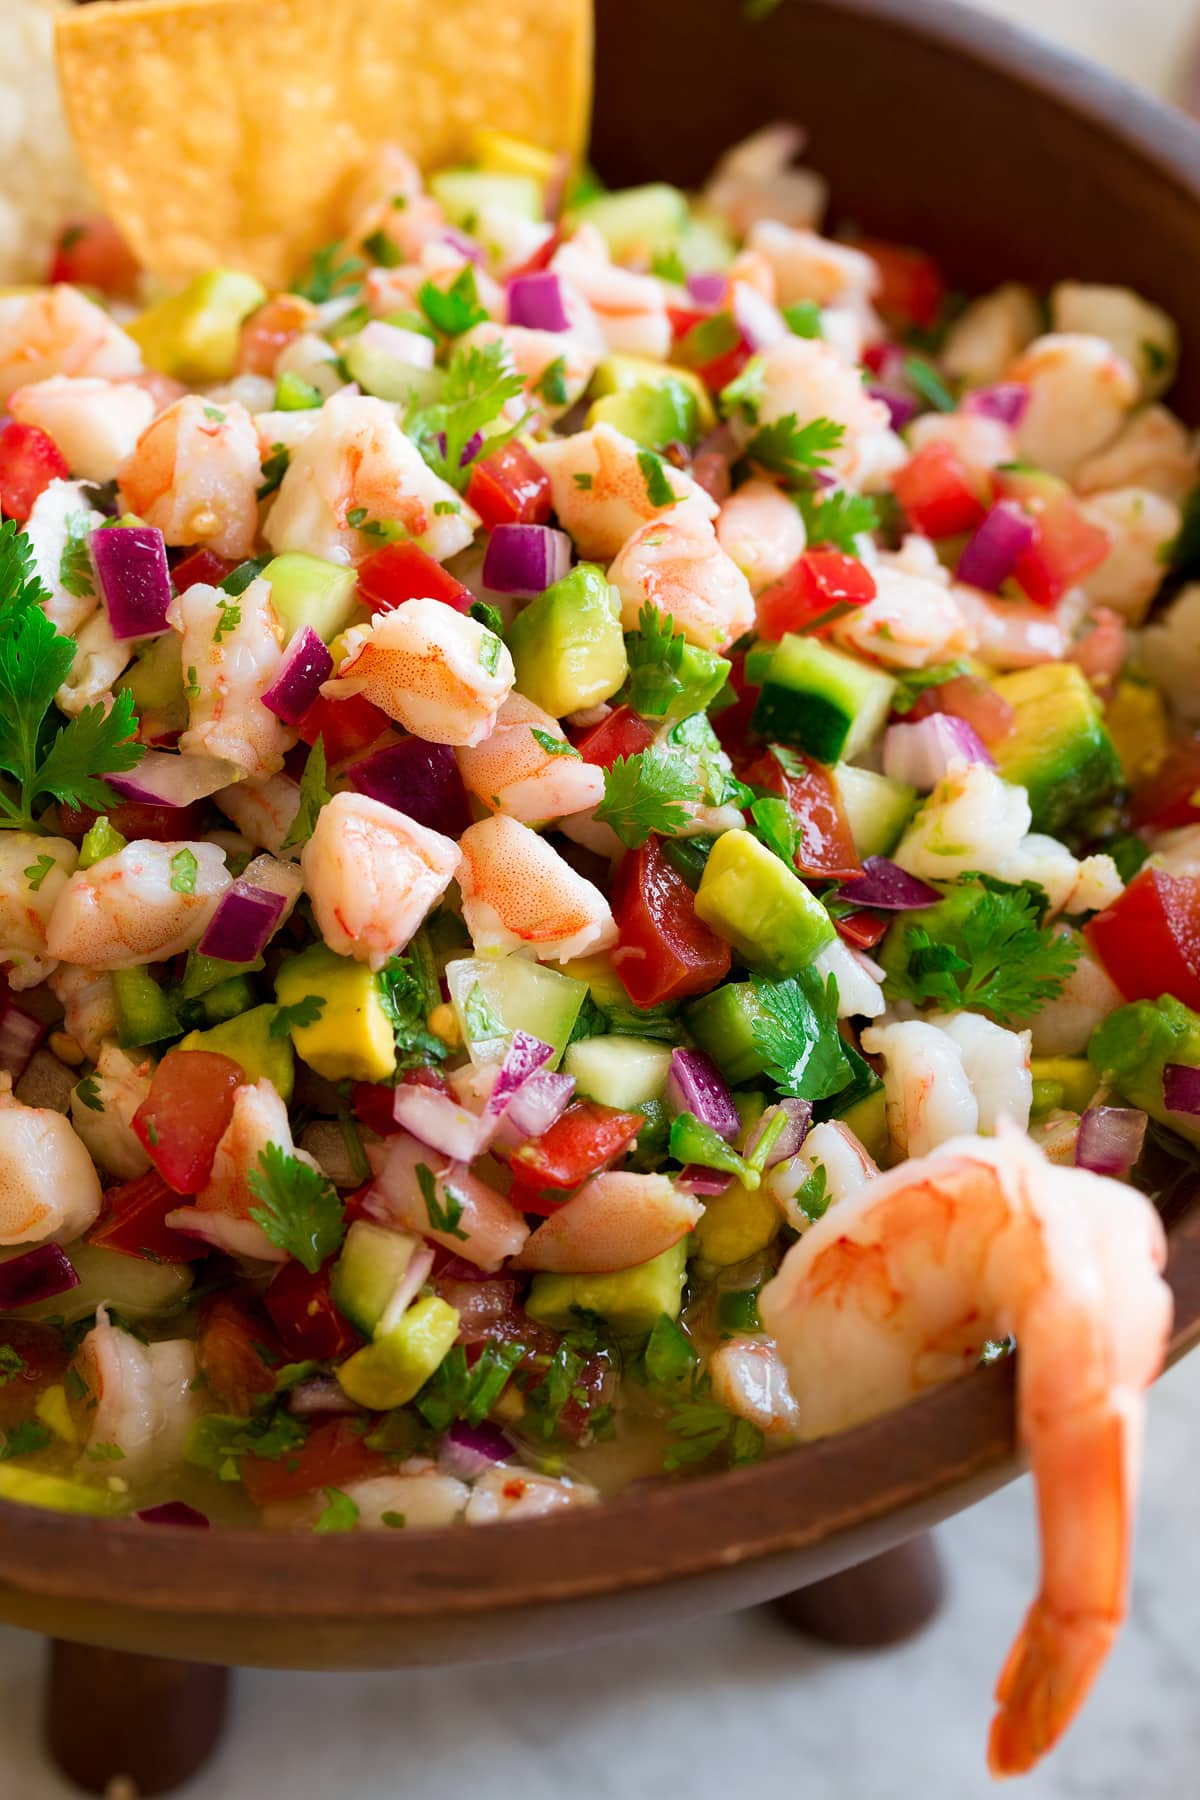 Close up image of shrimp ceviche in a wooden bowl.